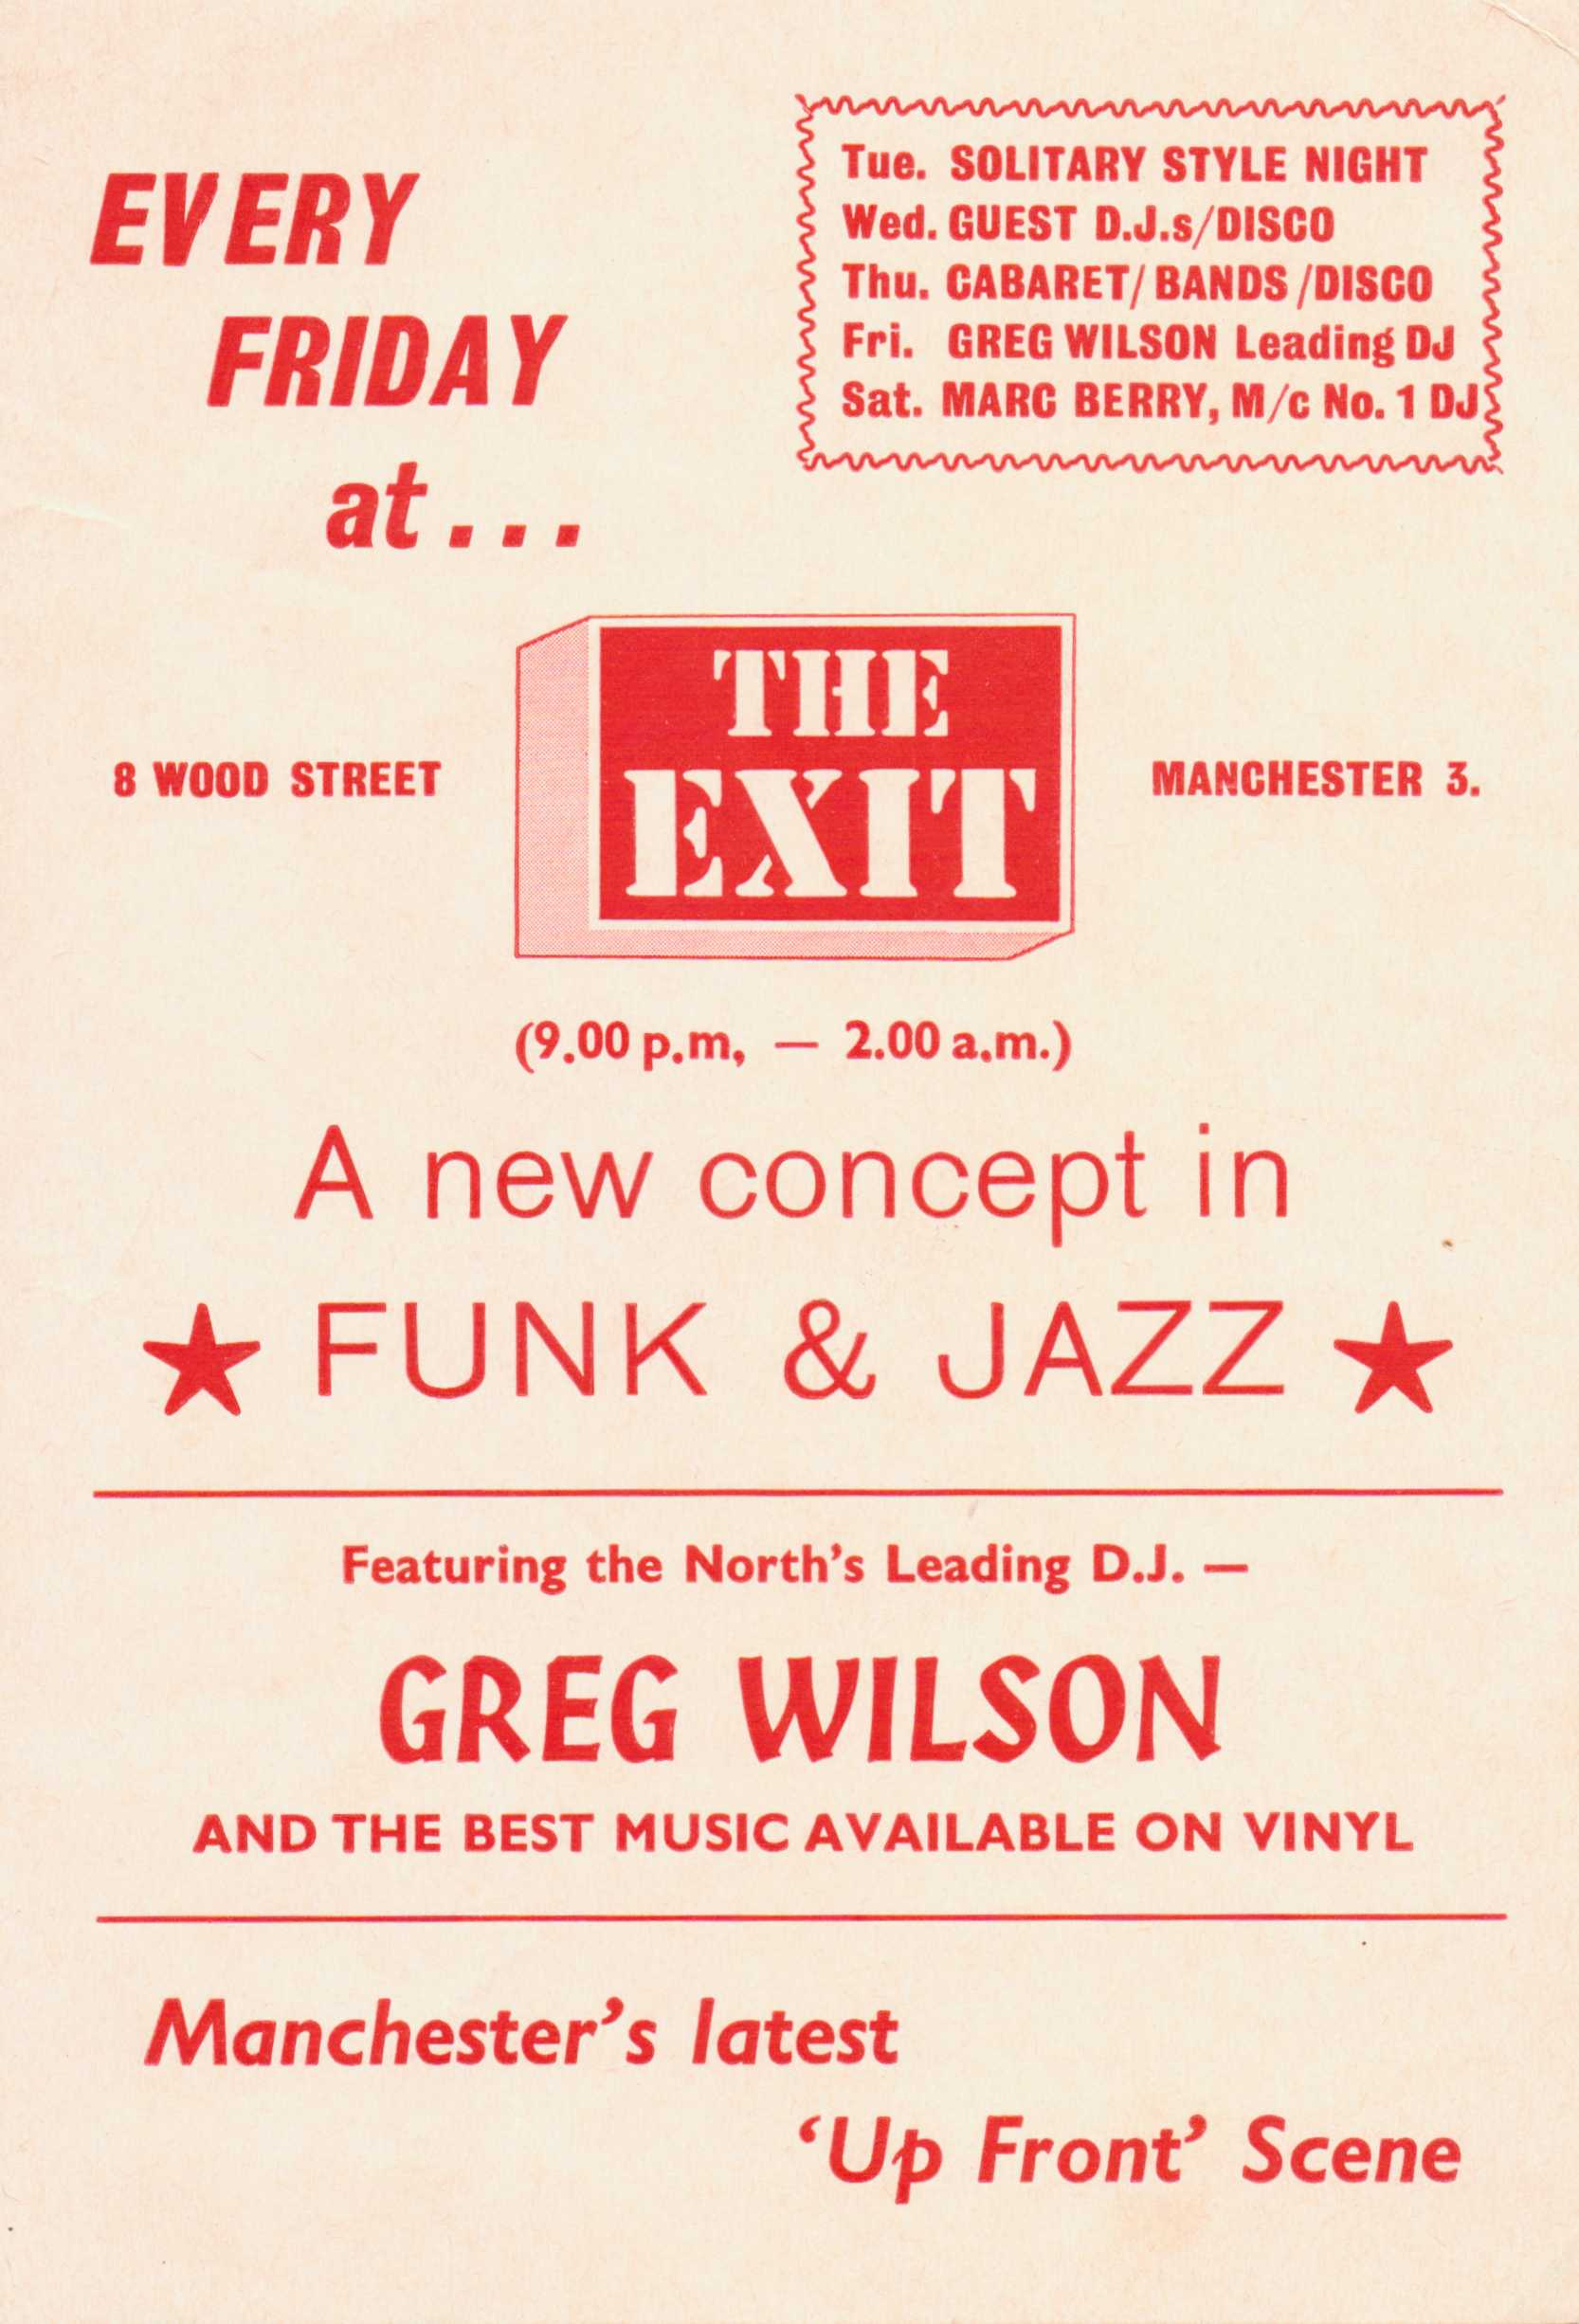 The Exit Manchester Flyer